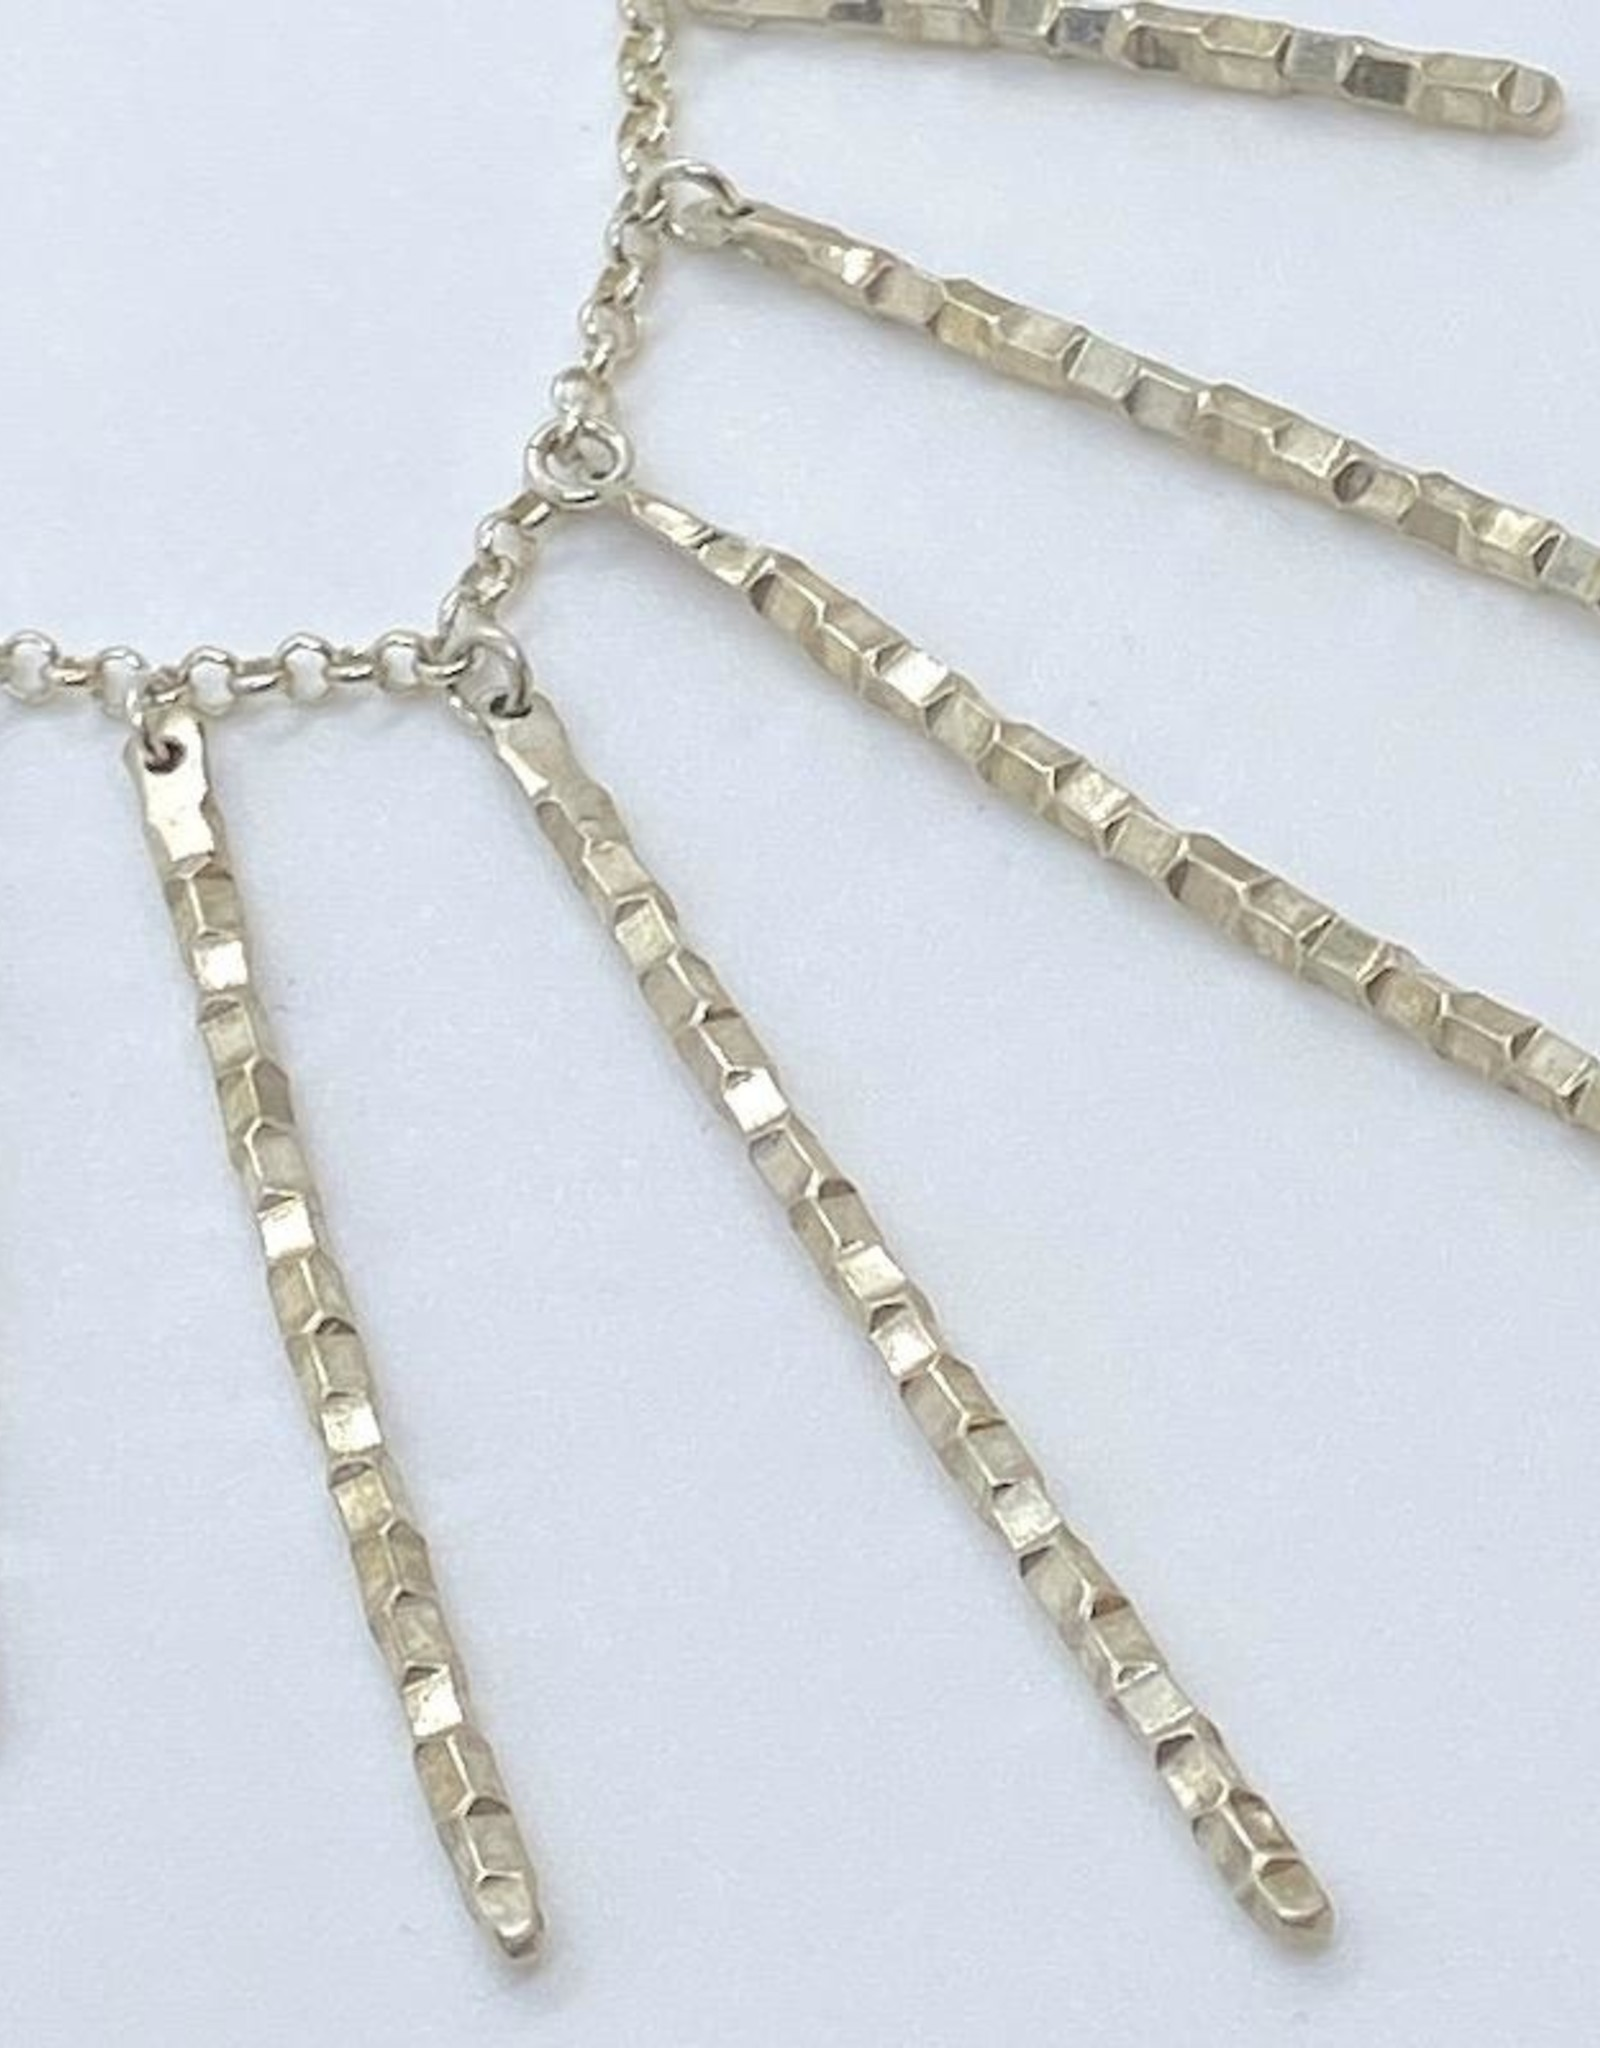 Handmade Sterling Silver Necklace with 7 graduated faceted sticks